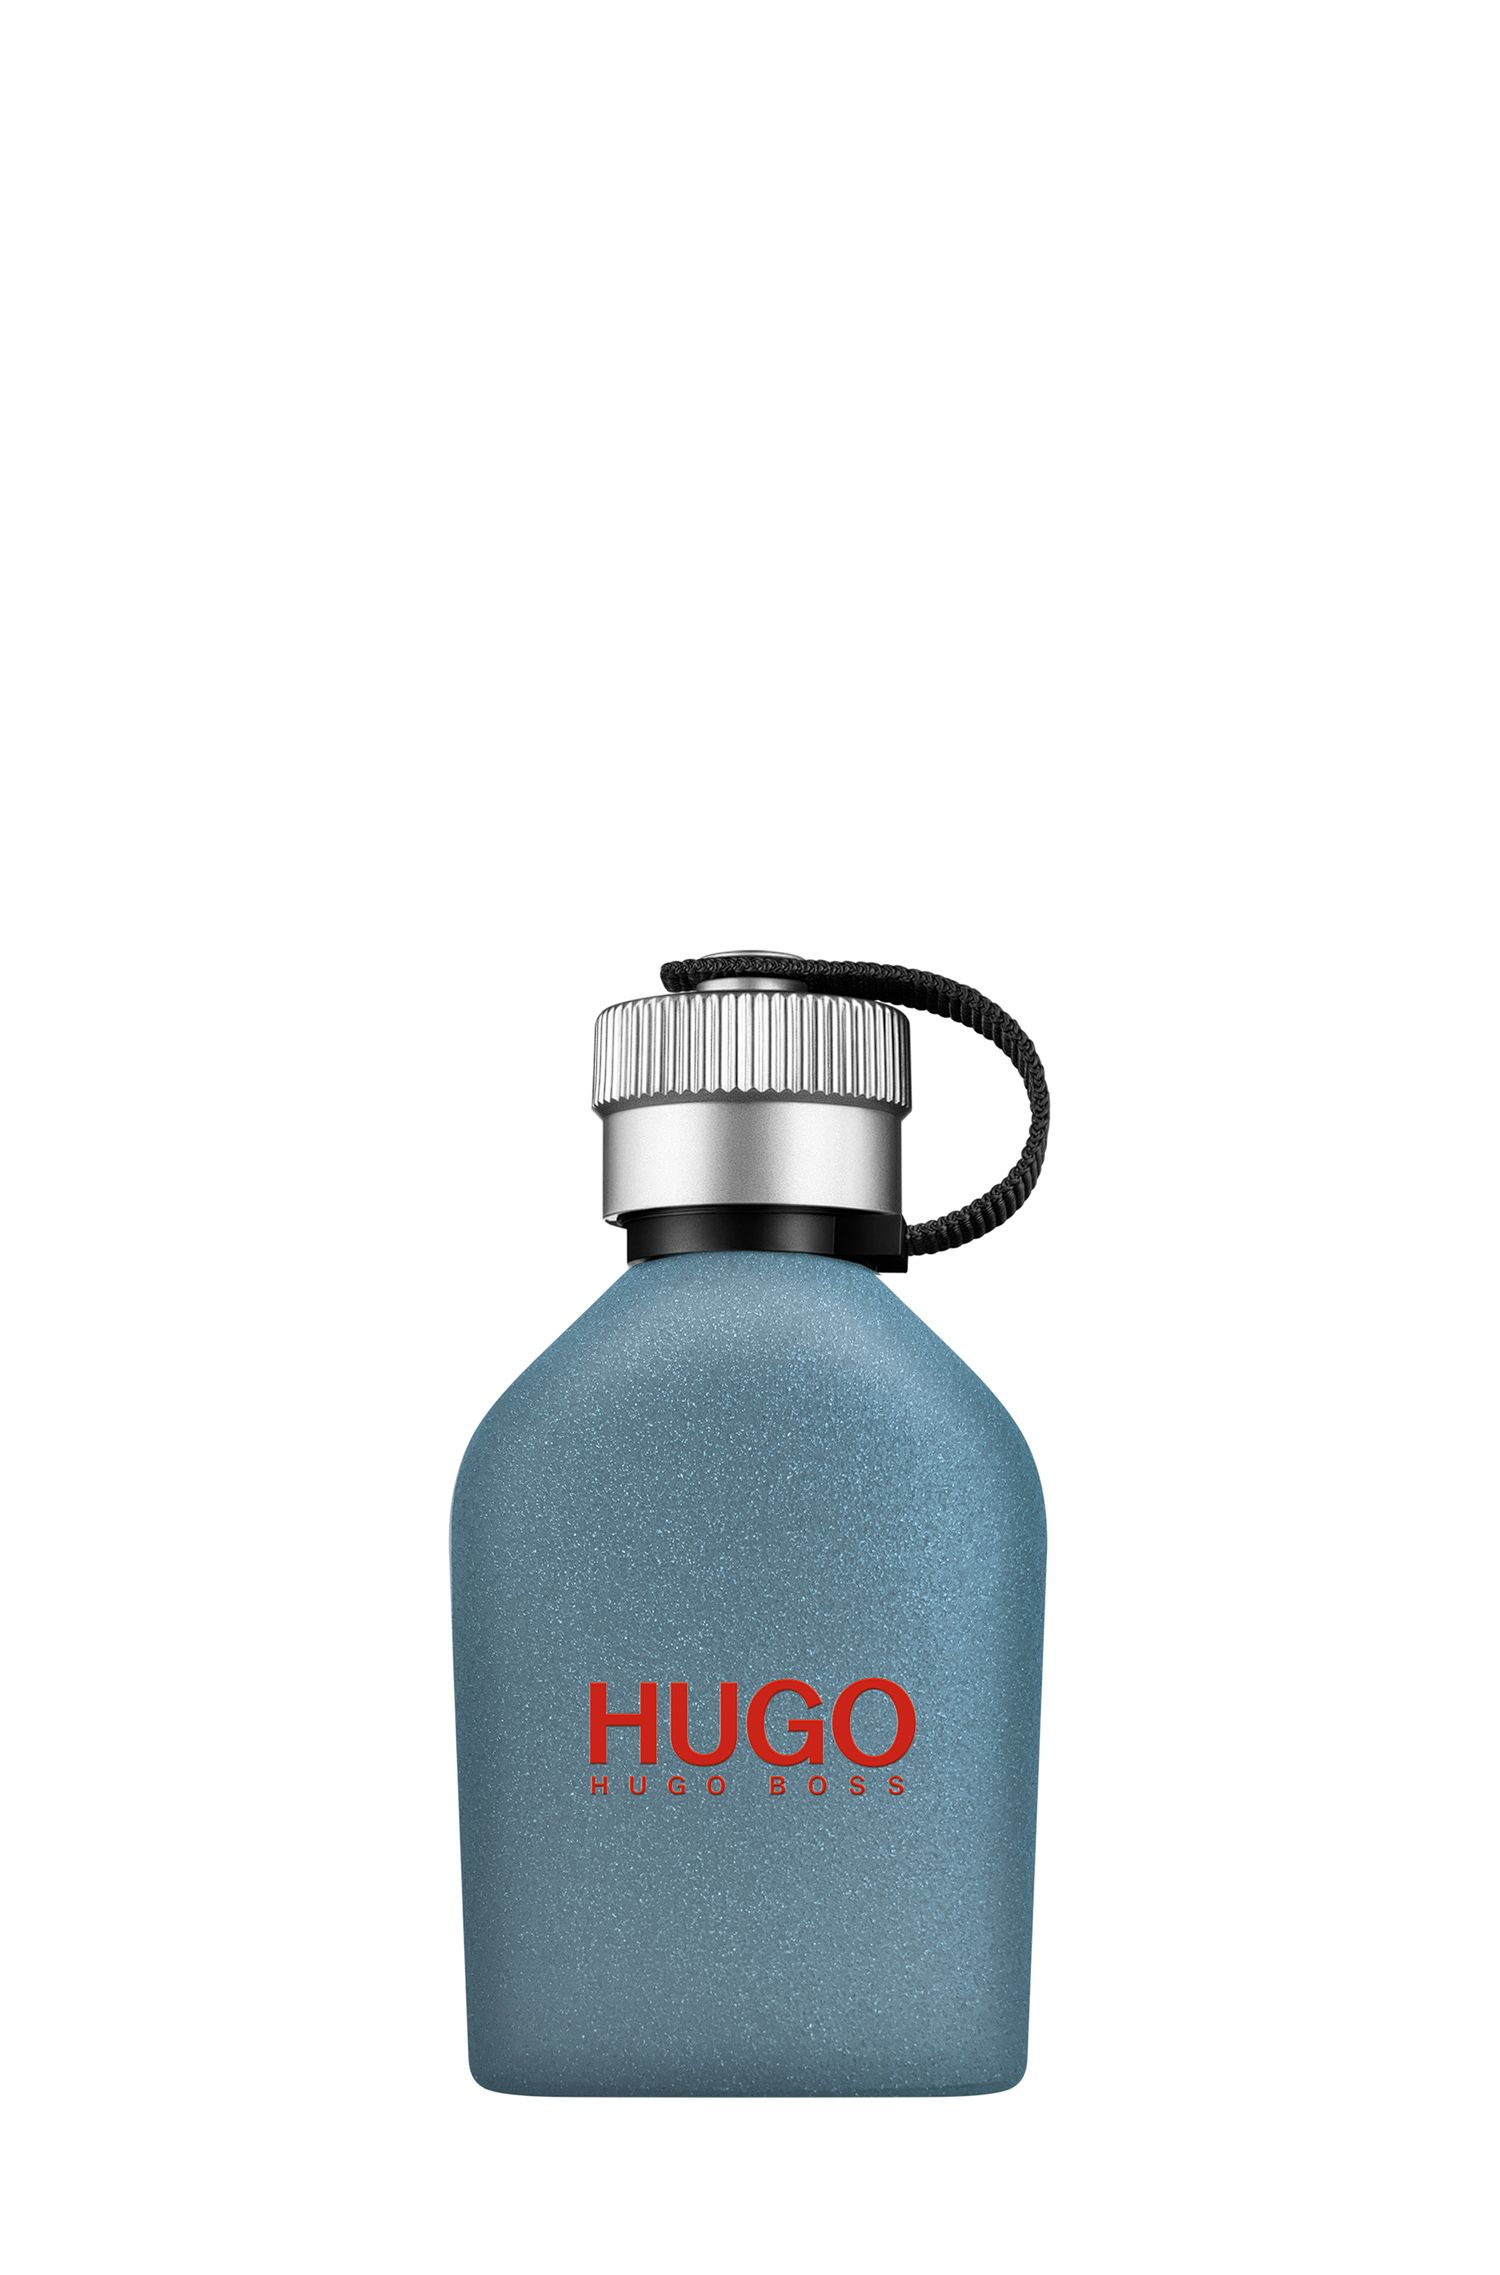 Eau de toilette HUGO Urban Journey de 75 ml